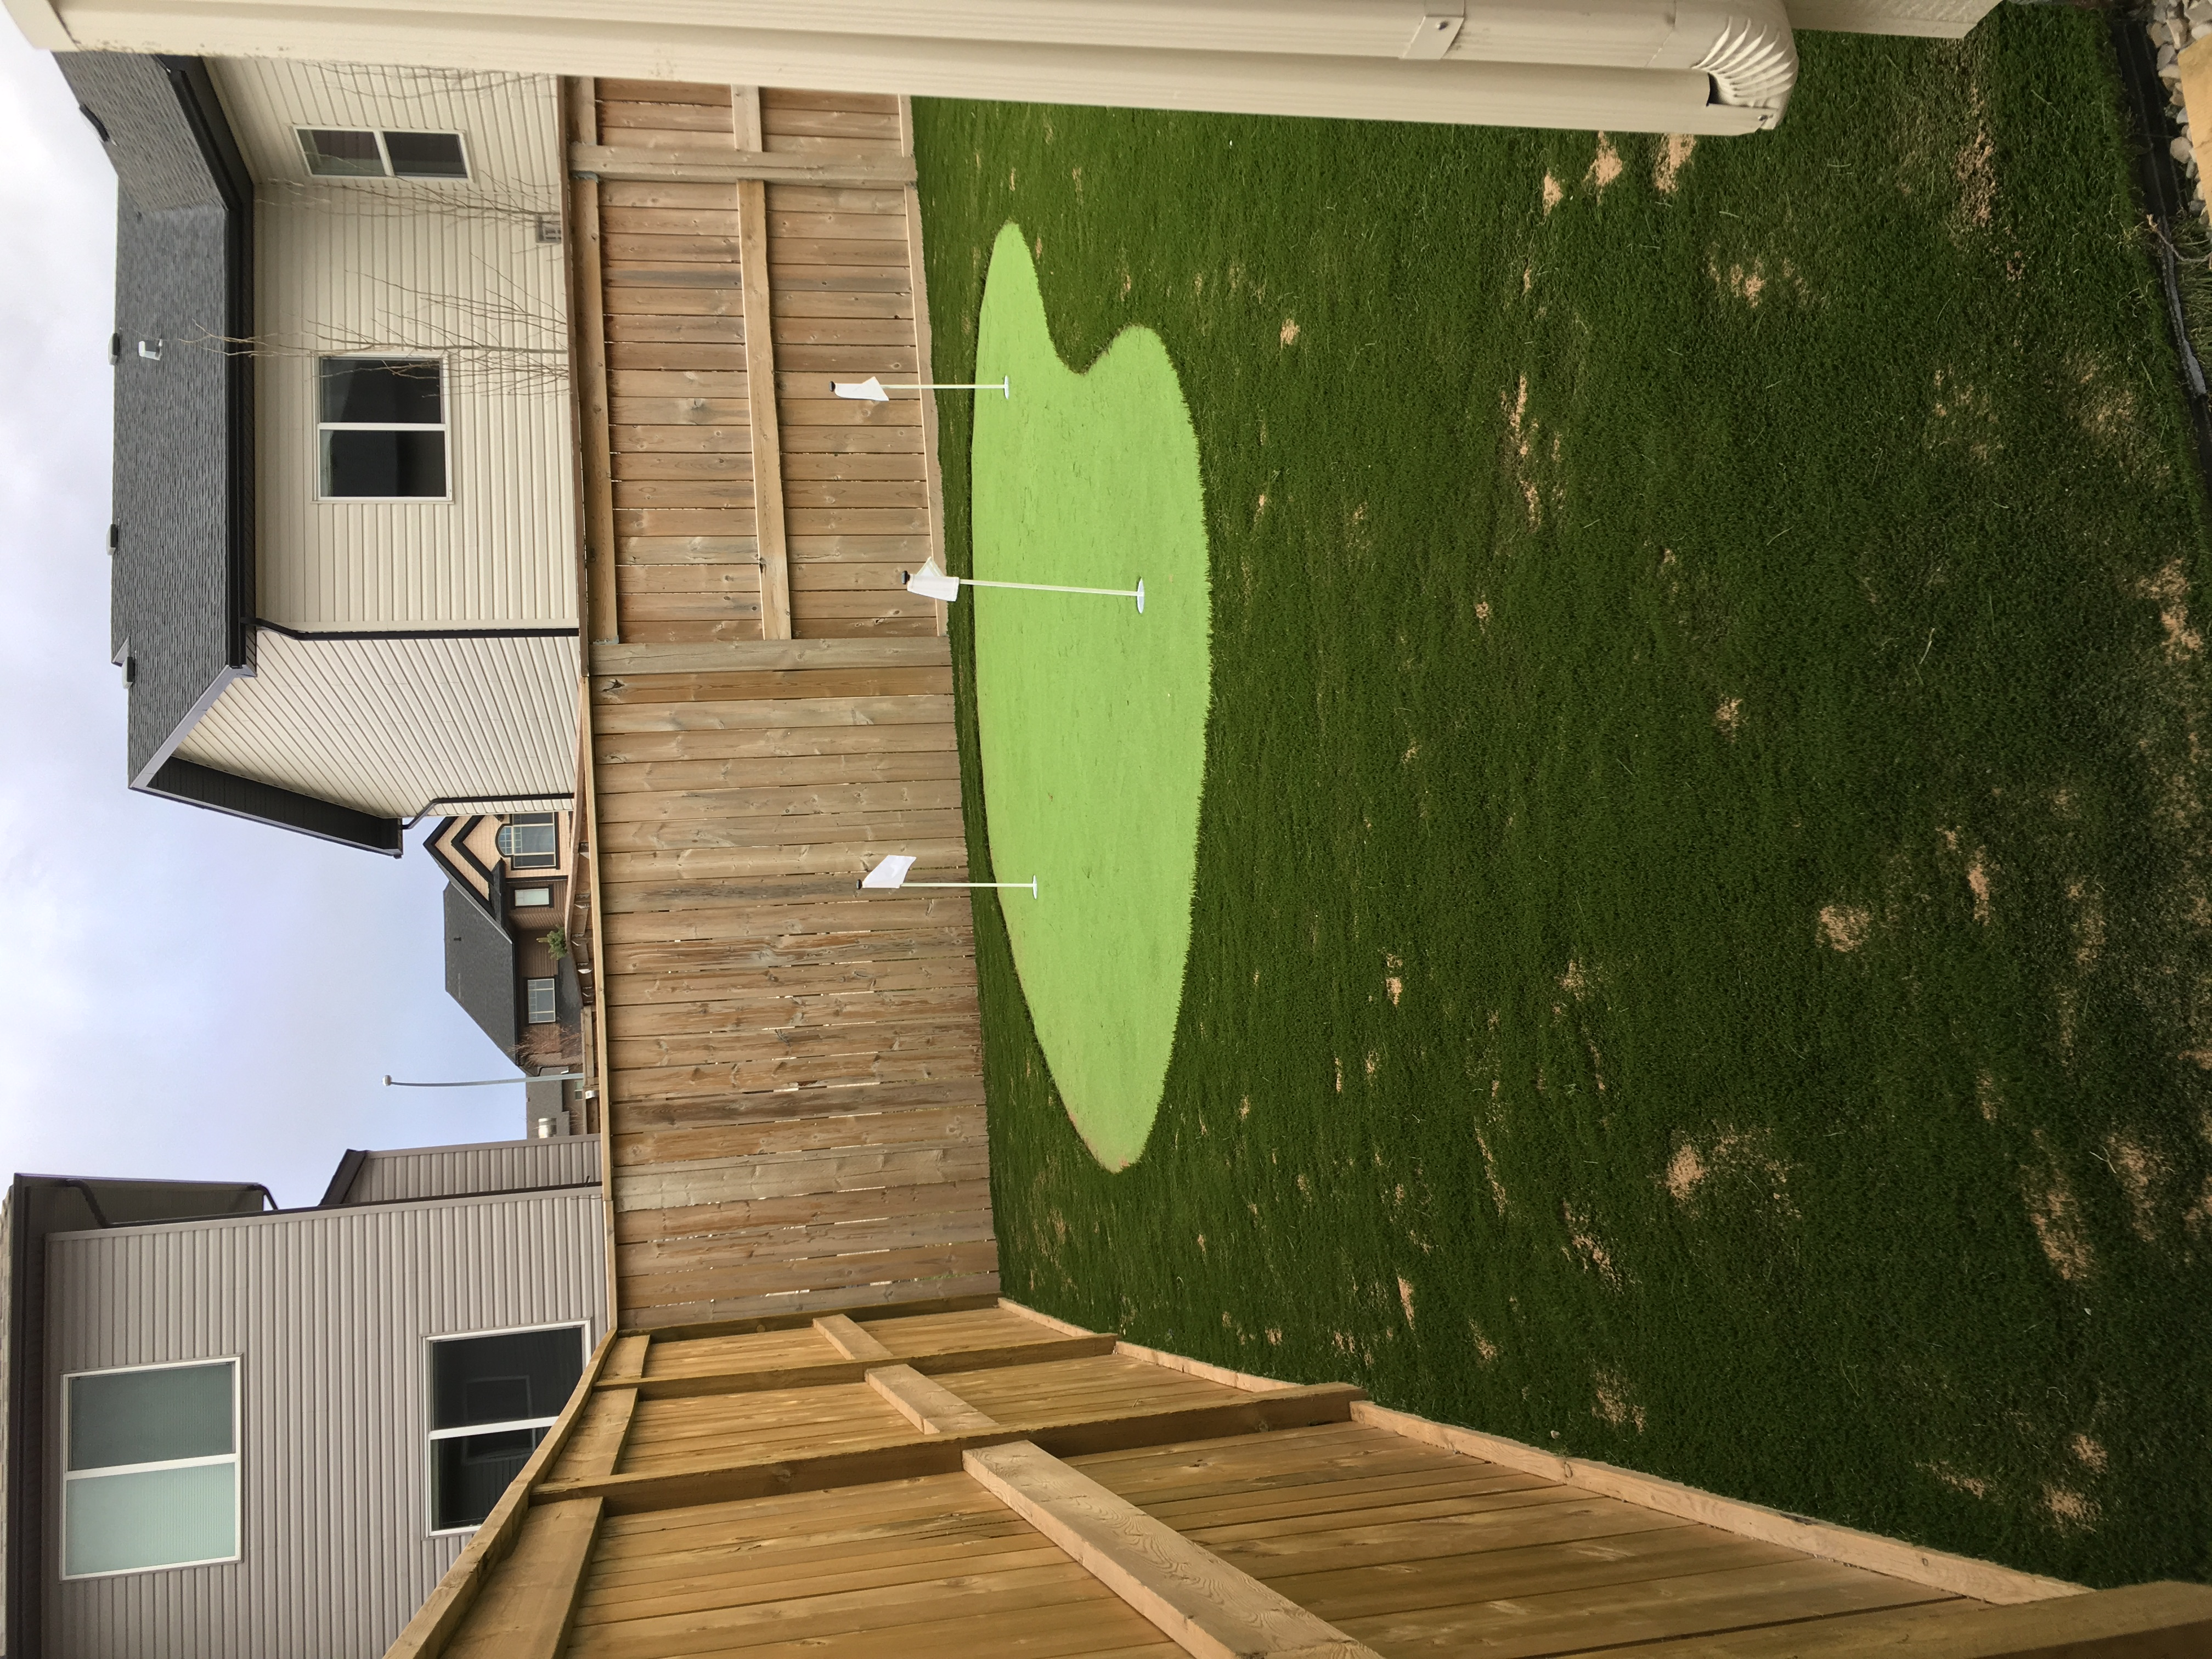 Strathmore Artificial Turf and Putting Green